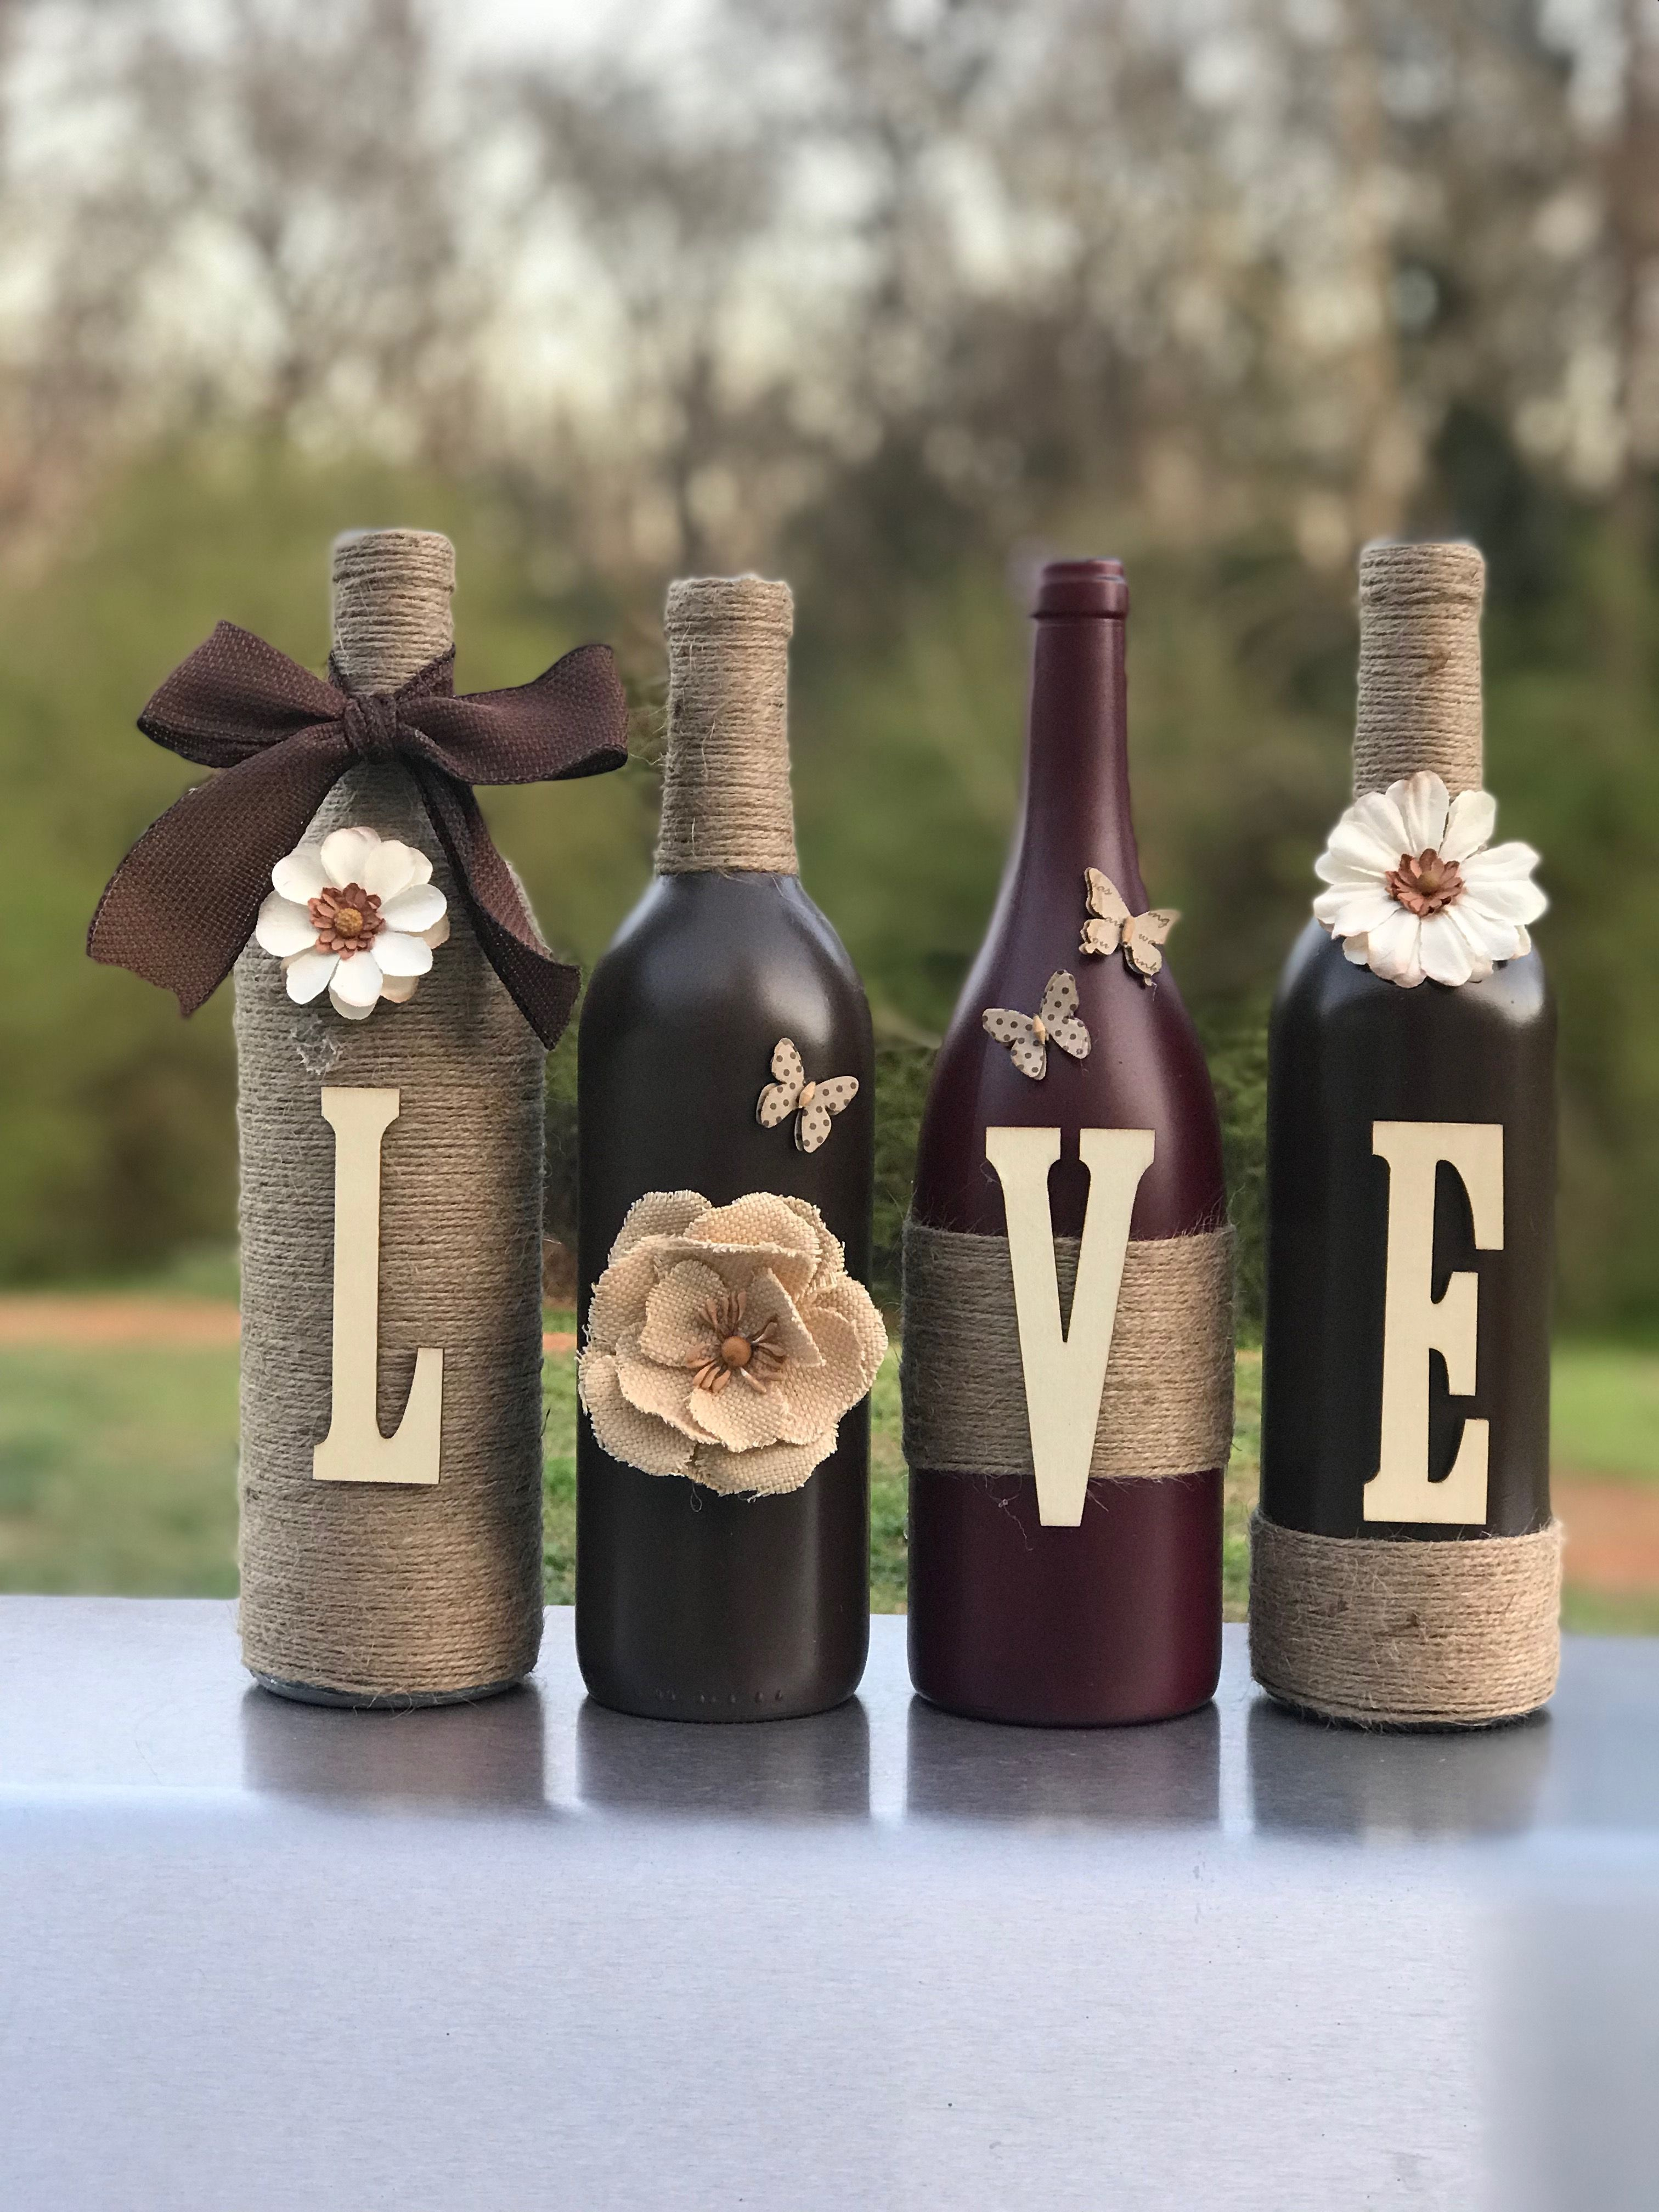 Find this Pin and more on Wine